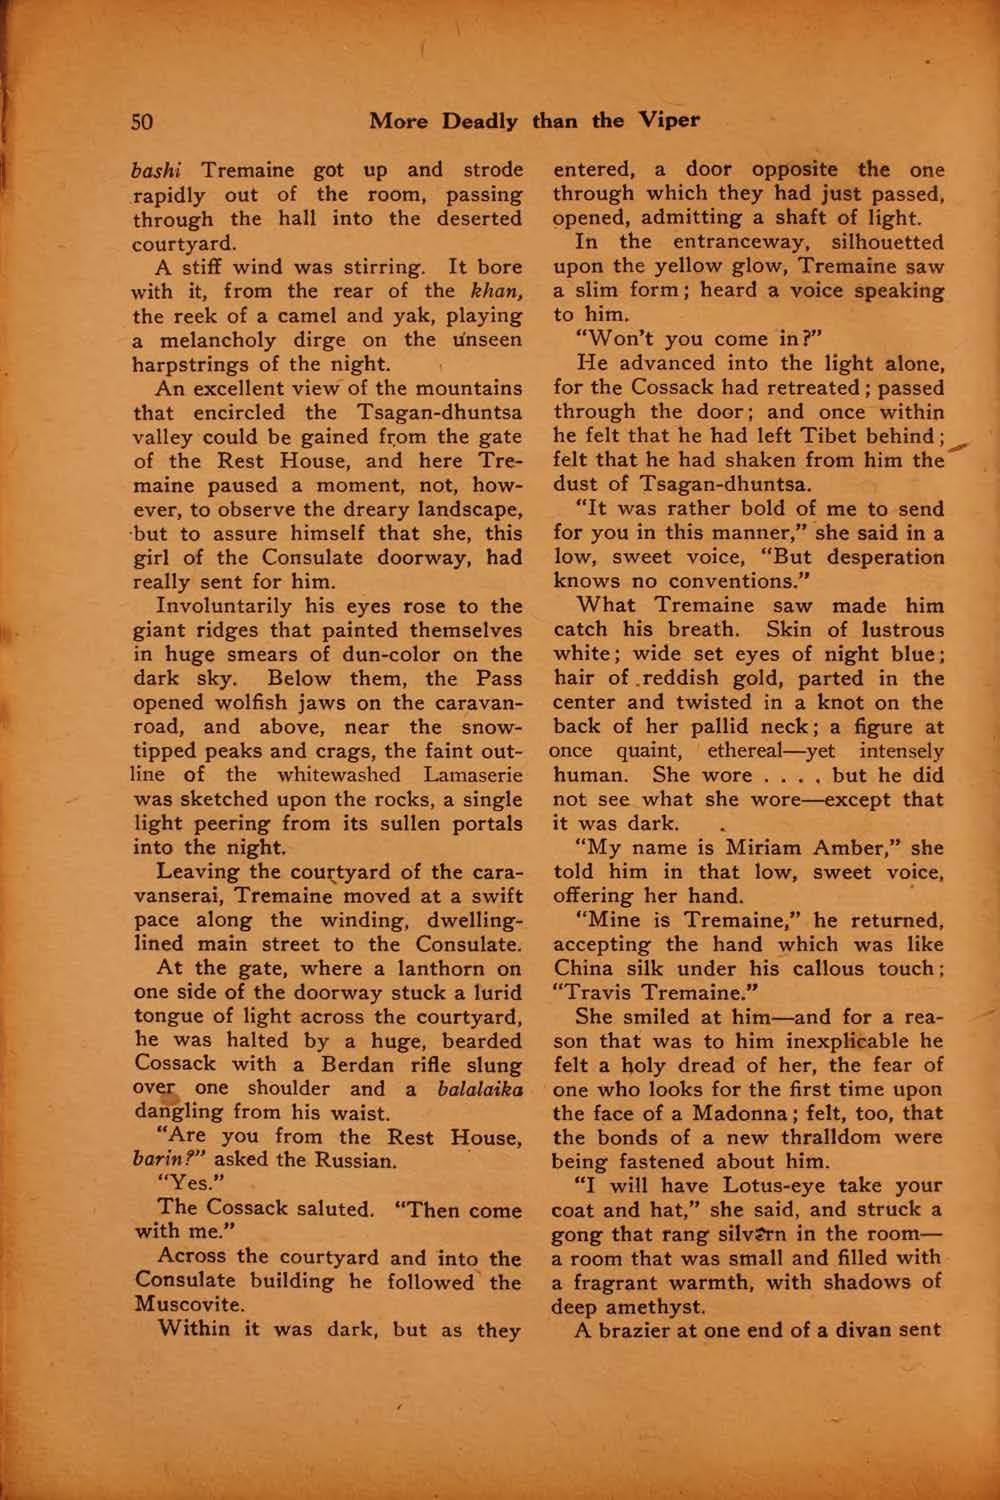 The black mask vol 1 no 5 august 1920 ed by f m osbourne view facsimile 50 more deadly than the viper fandeluxe Images